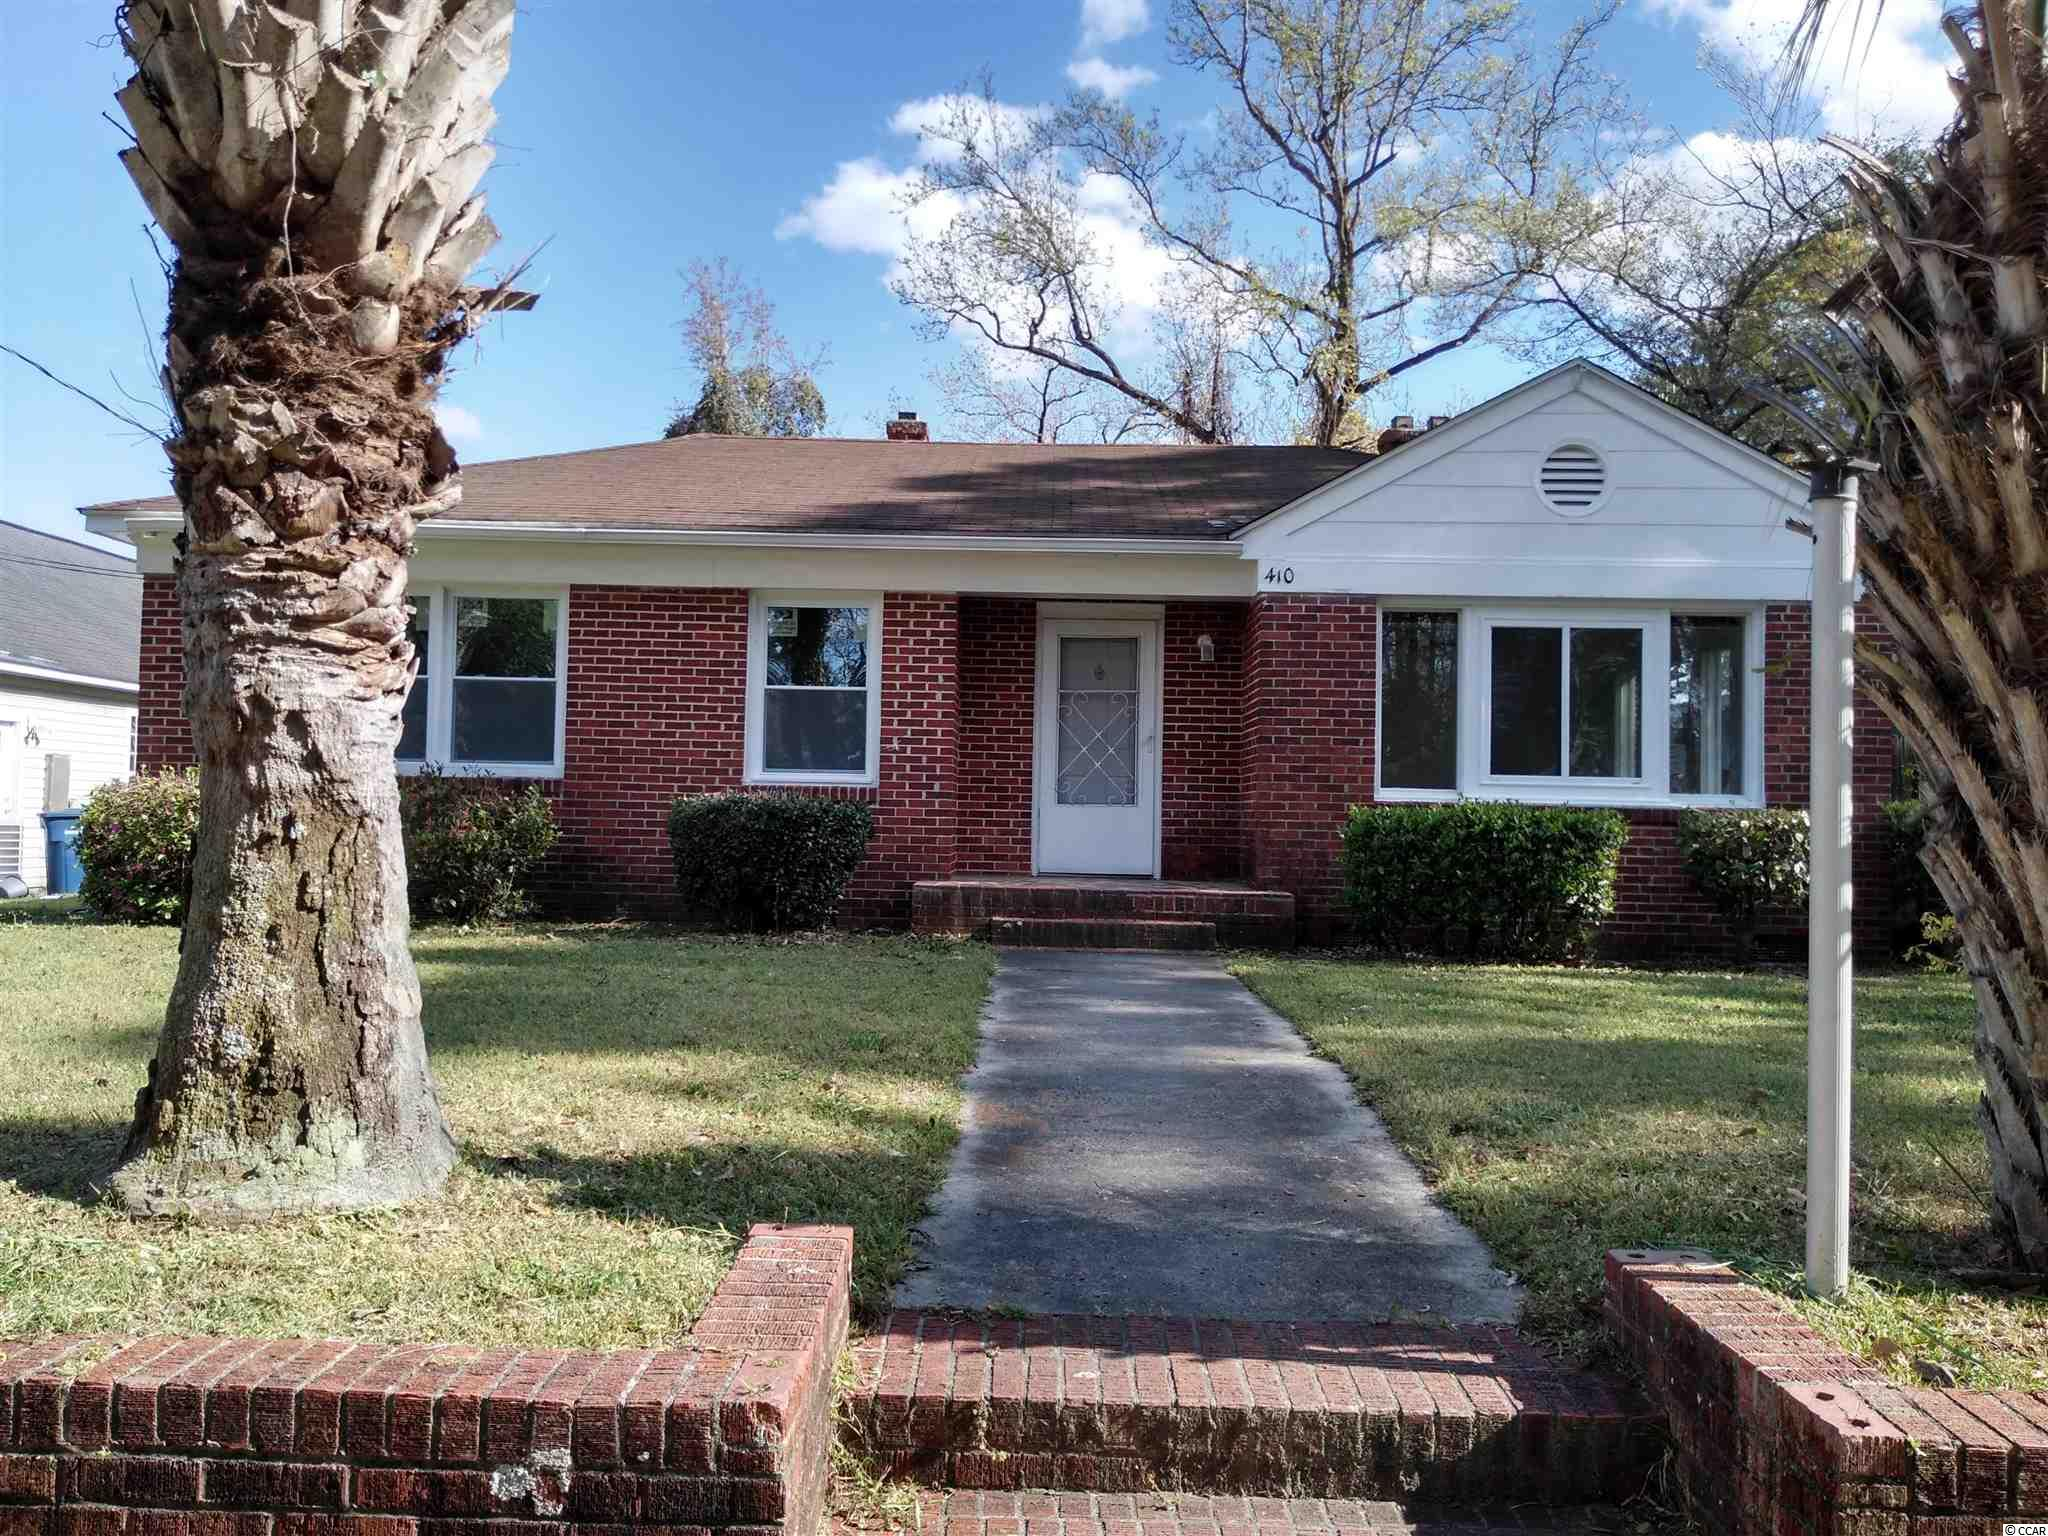 """This is on the high land's all brick home is located in the heart of Myrtle Beach close to the ocean, 10 minutes walk to the beach. Also close to the shops, restaurants and schools near HWY 501  and 17 business. Across the street is children's playground.  No HOA. There are 4 bedrooms ,2 bathroom, and large flexible room have enough windows for natural light into the rooms and get natural scenery. The New AC installed in 2020.  The new floor just finished the installation. You can still smell the fresh paint on new walls. The screen is big enough for a small family to enjoy the breeze overlooking at large back yard. The property sold """"as it"""""""